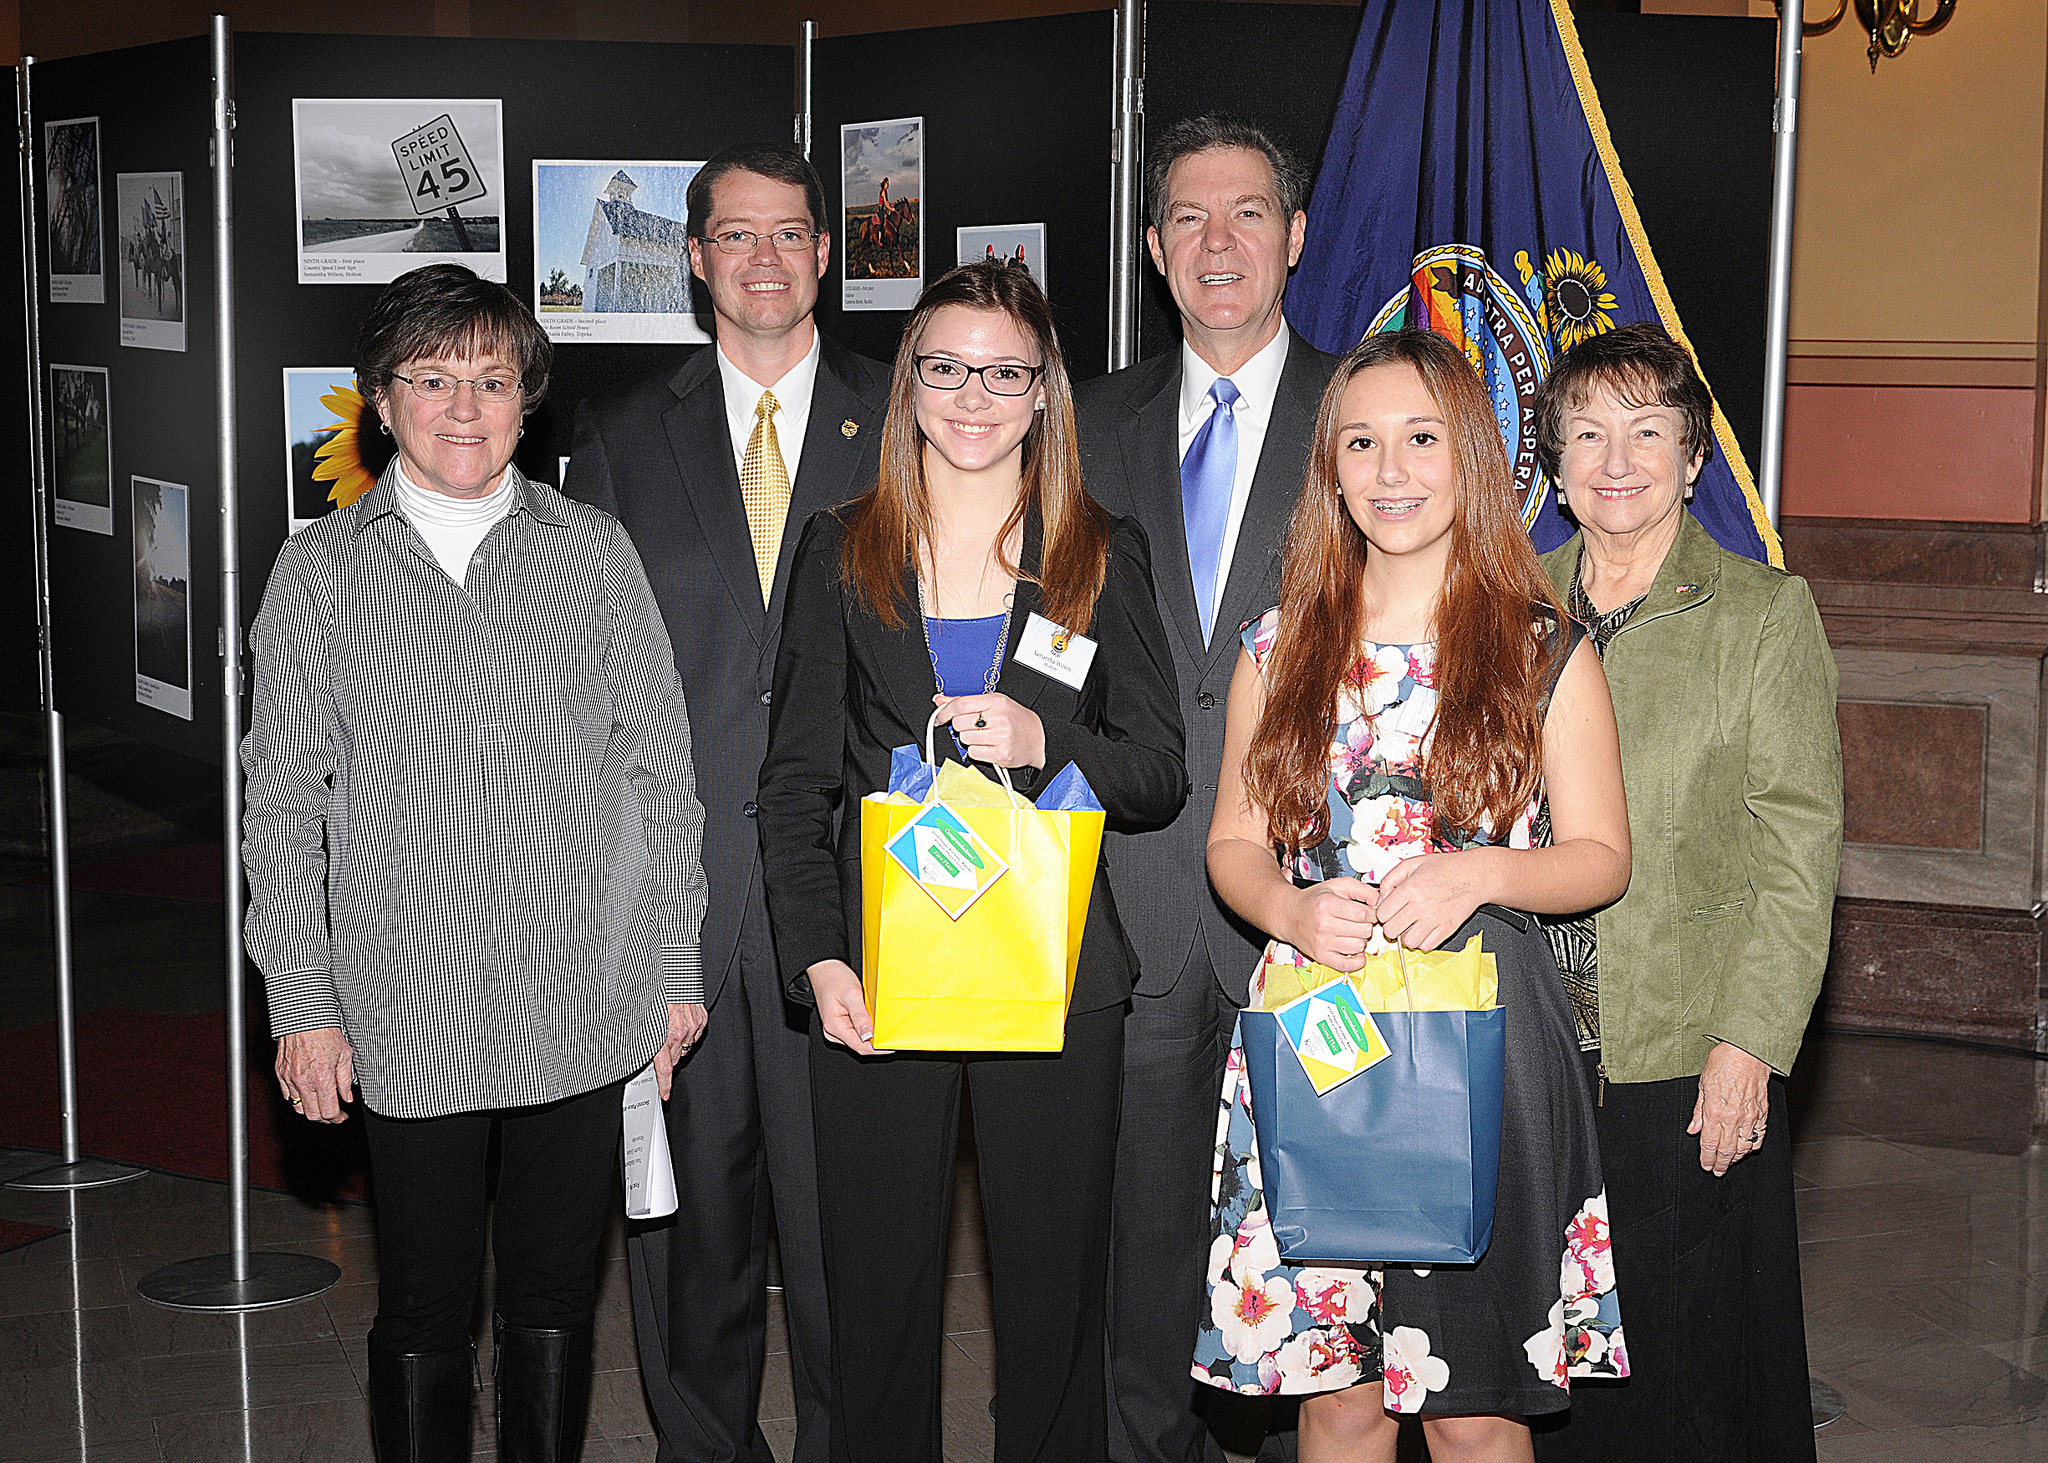 Ninth grade winners Samantha Wilson and Michaela Falley with Senator Laura Kelly, Representative Fred Patton, Governor Sam Brownback, and Marearl Denning